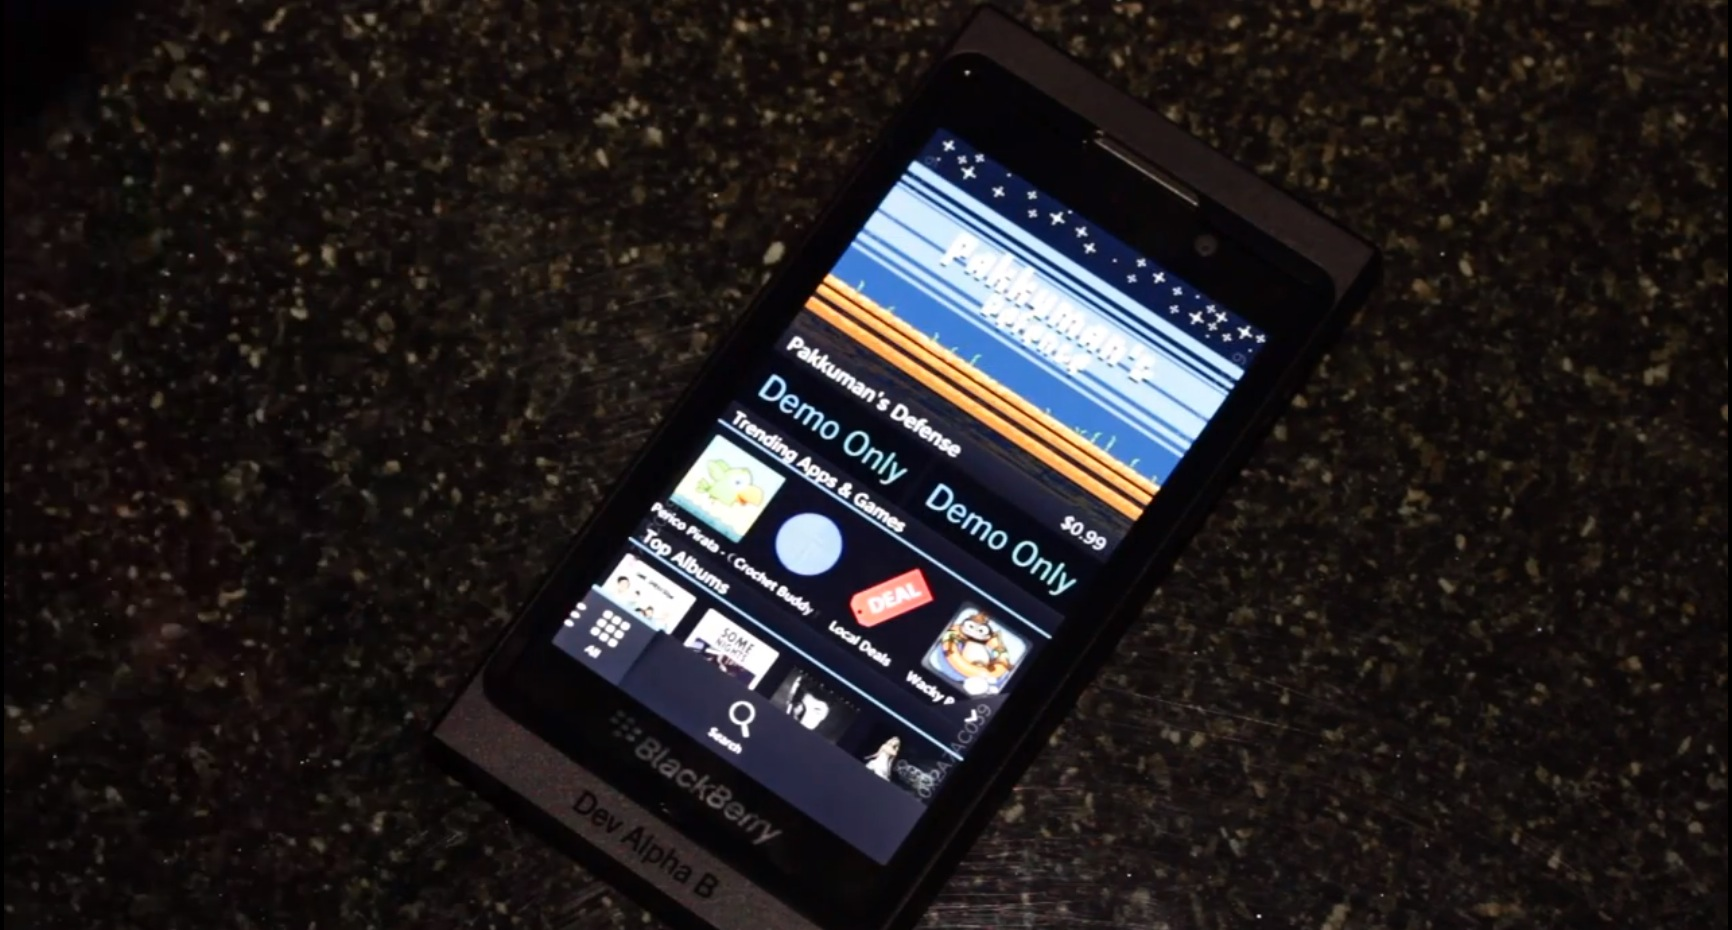 Analyst Report: Will Blackberry 10 Rescue RIM?